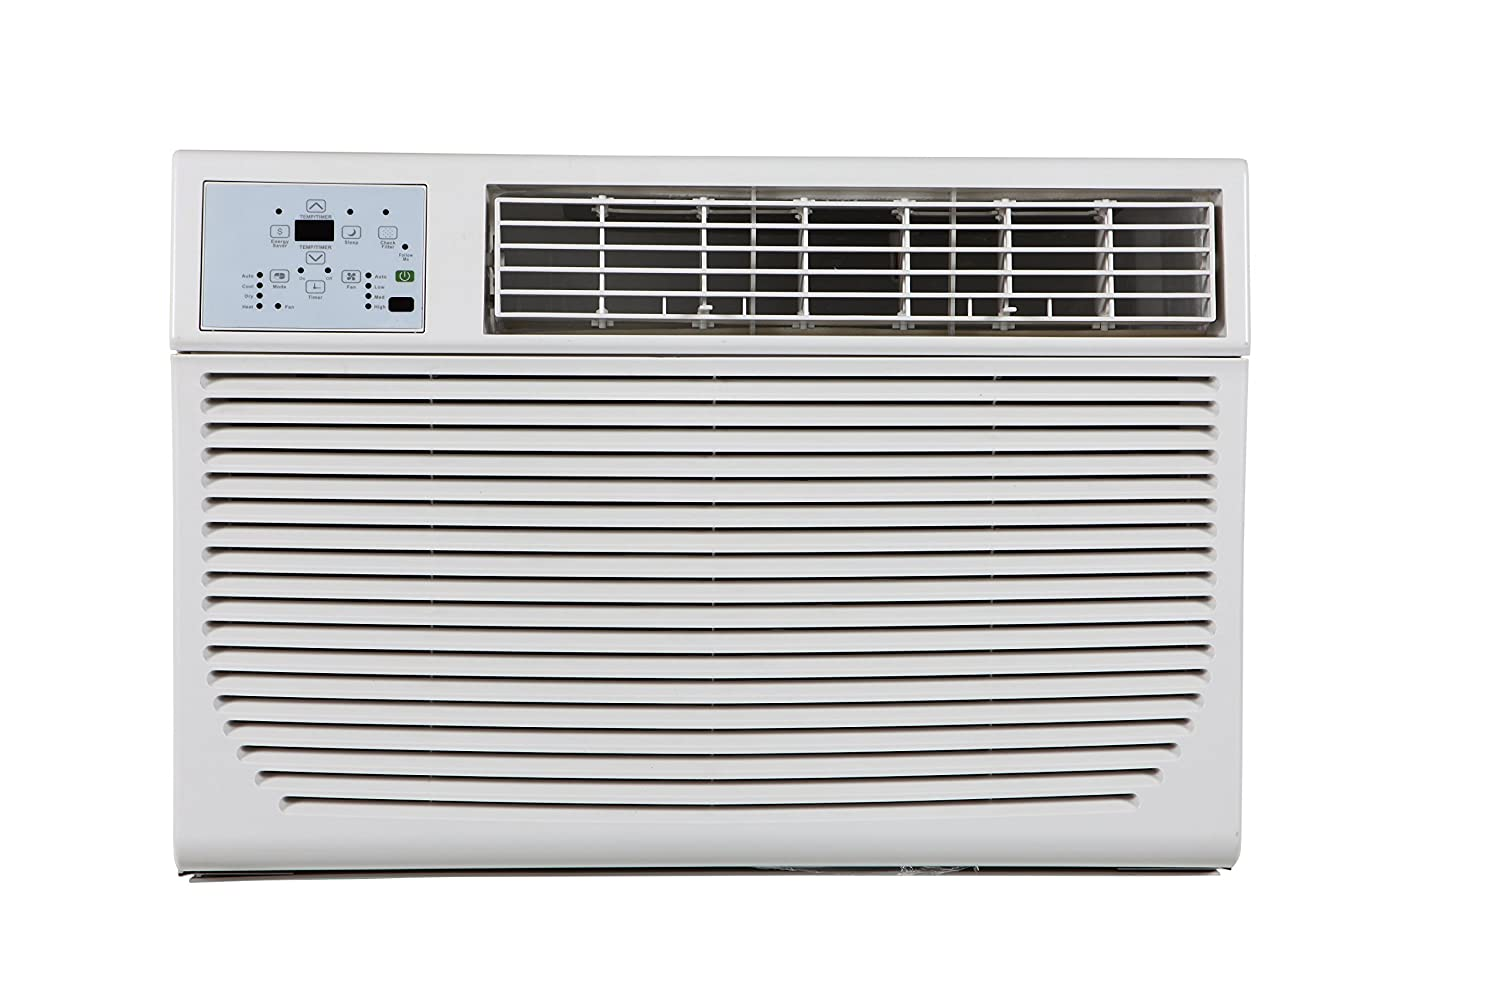 Impecca ITAC10-KSB21 10,000 BTU/230V Electronic Controlled Through The Wall Air Conditioner with Remote